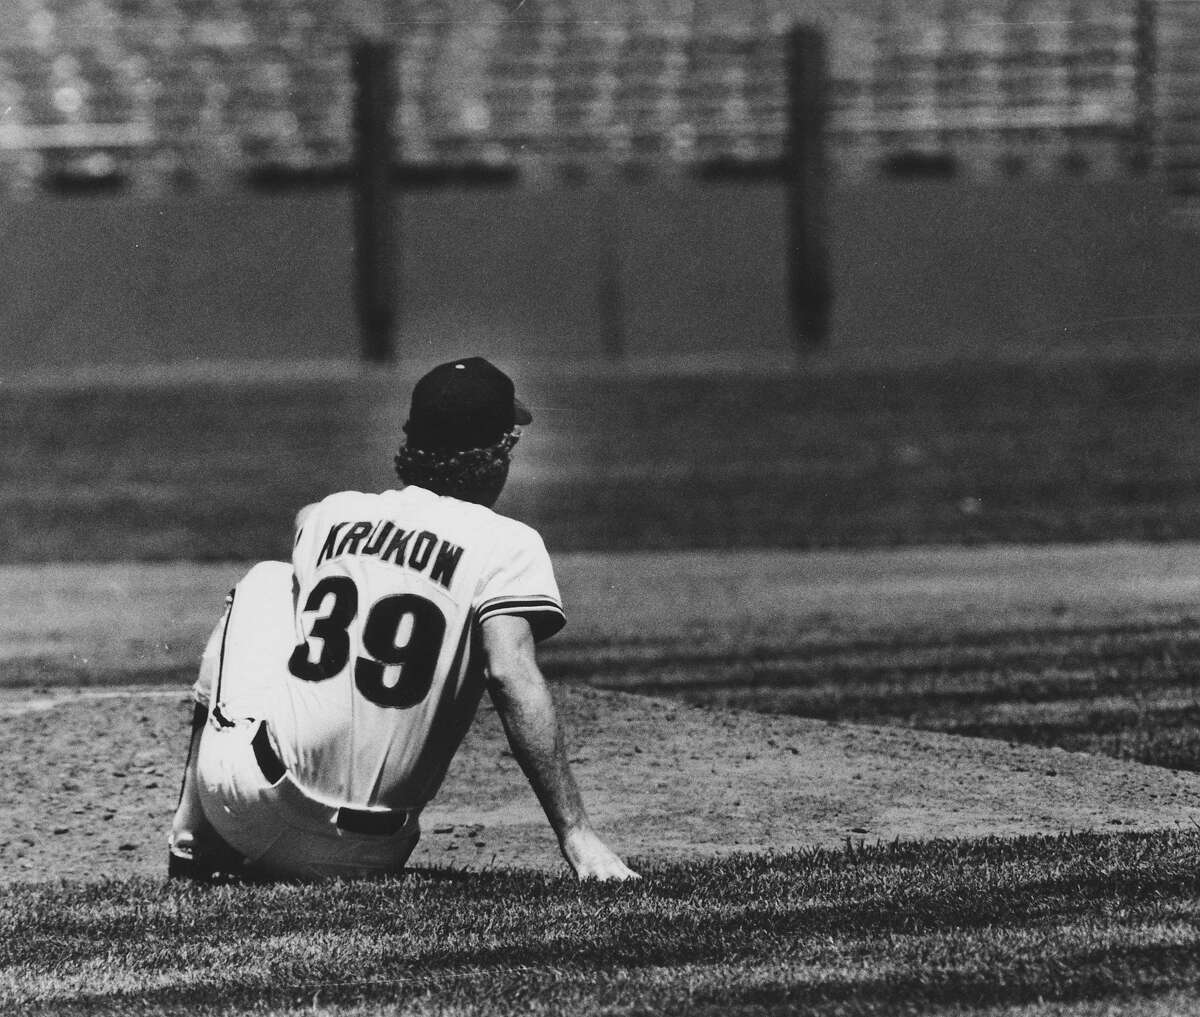 June 6, 1985: Mike Krukow of the San Francisco Giants stares into the outfield after giving up a two-run single.